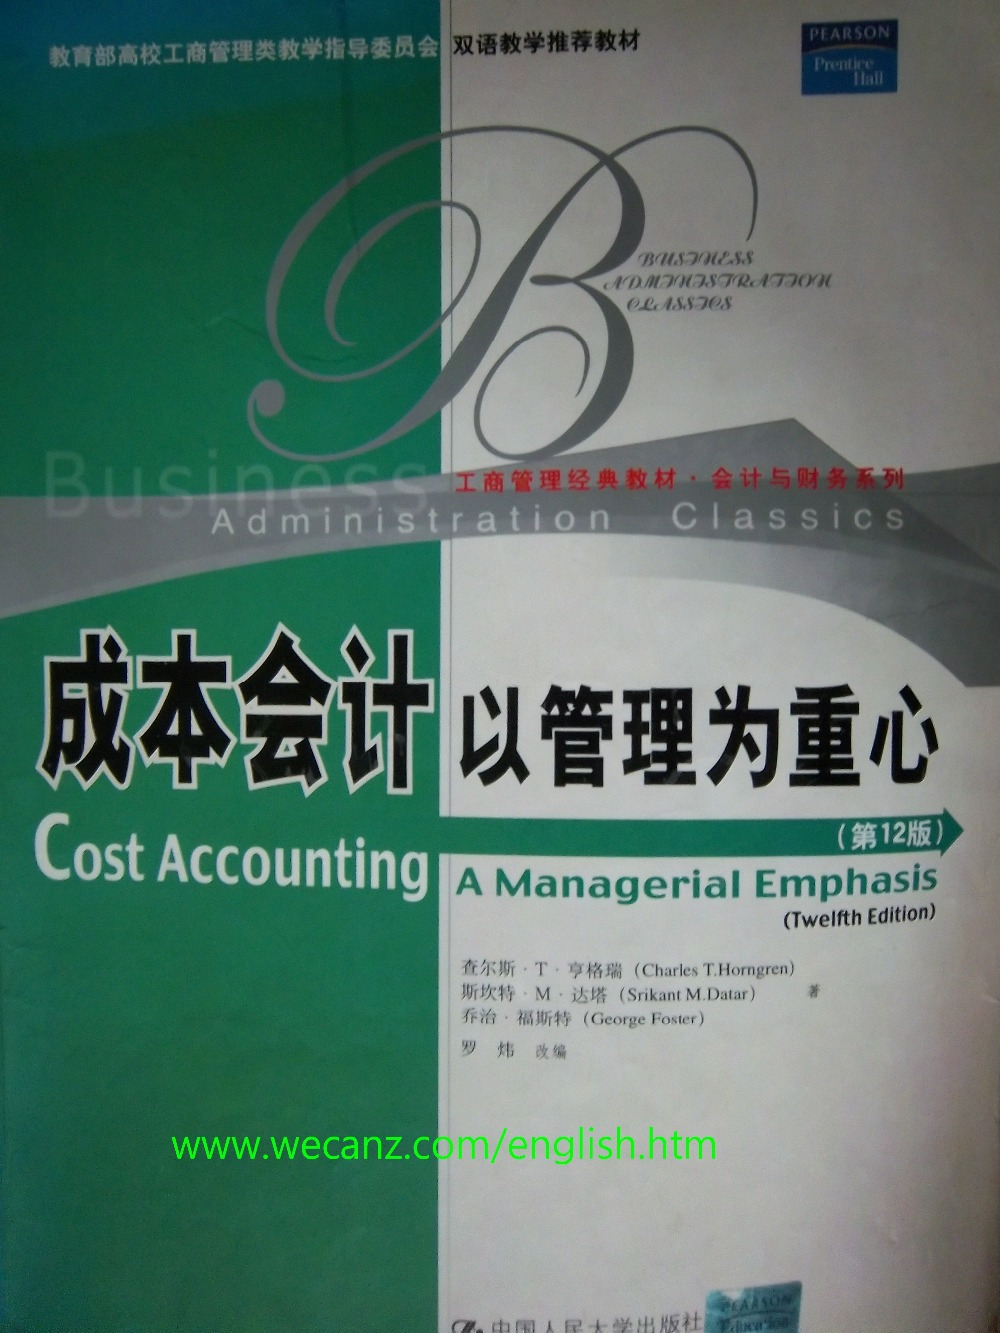 cost accounting horngren chapter 6 solutions Vind alle studiedocumenten for cost accounting: a managerial emphasis  a managerial emphasis book solution accounting, horngren  cost accounting chapter 6.